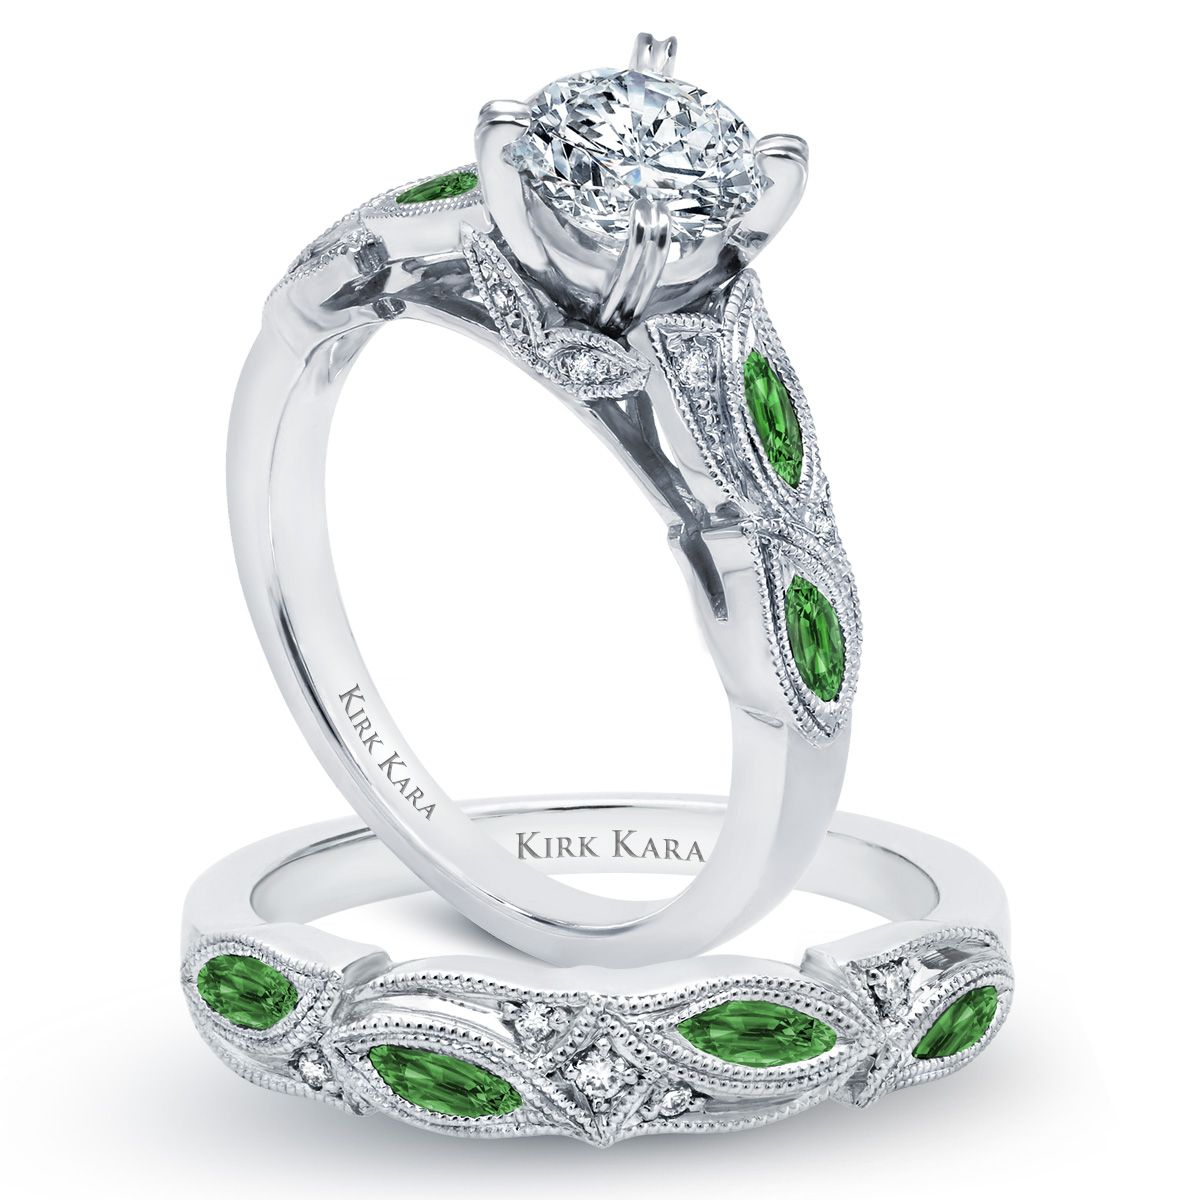 Let your love BLOOM with this beautiful engagement ring adorned